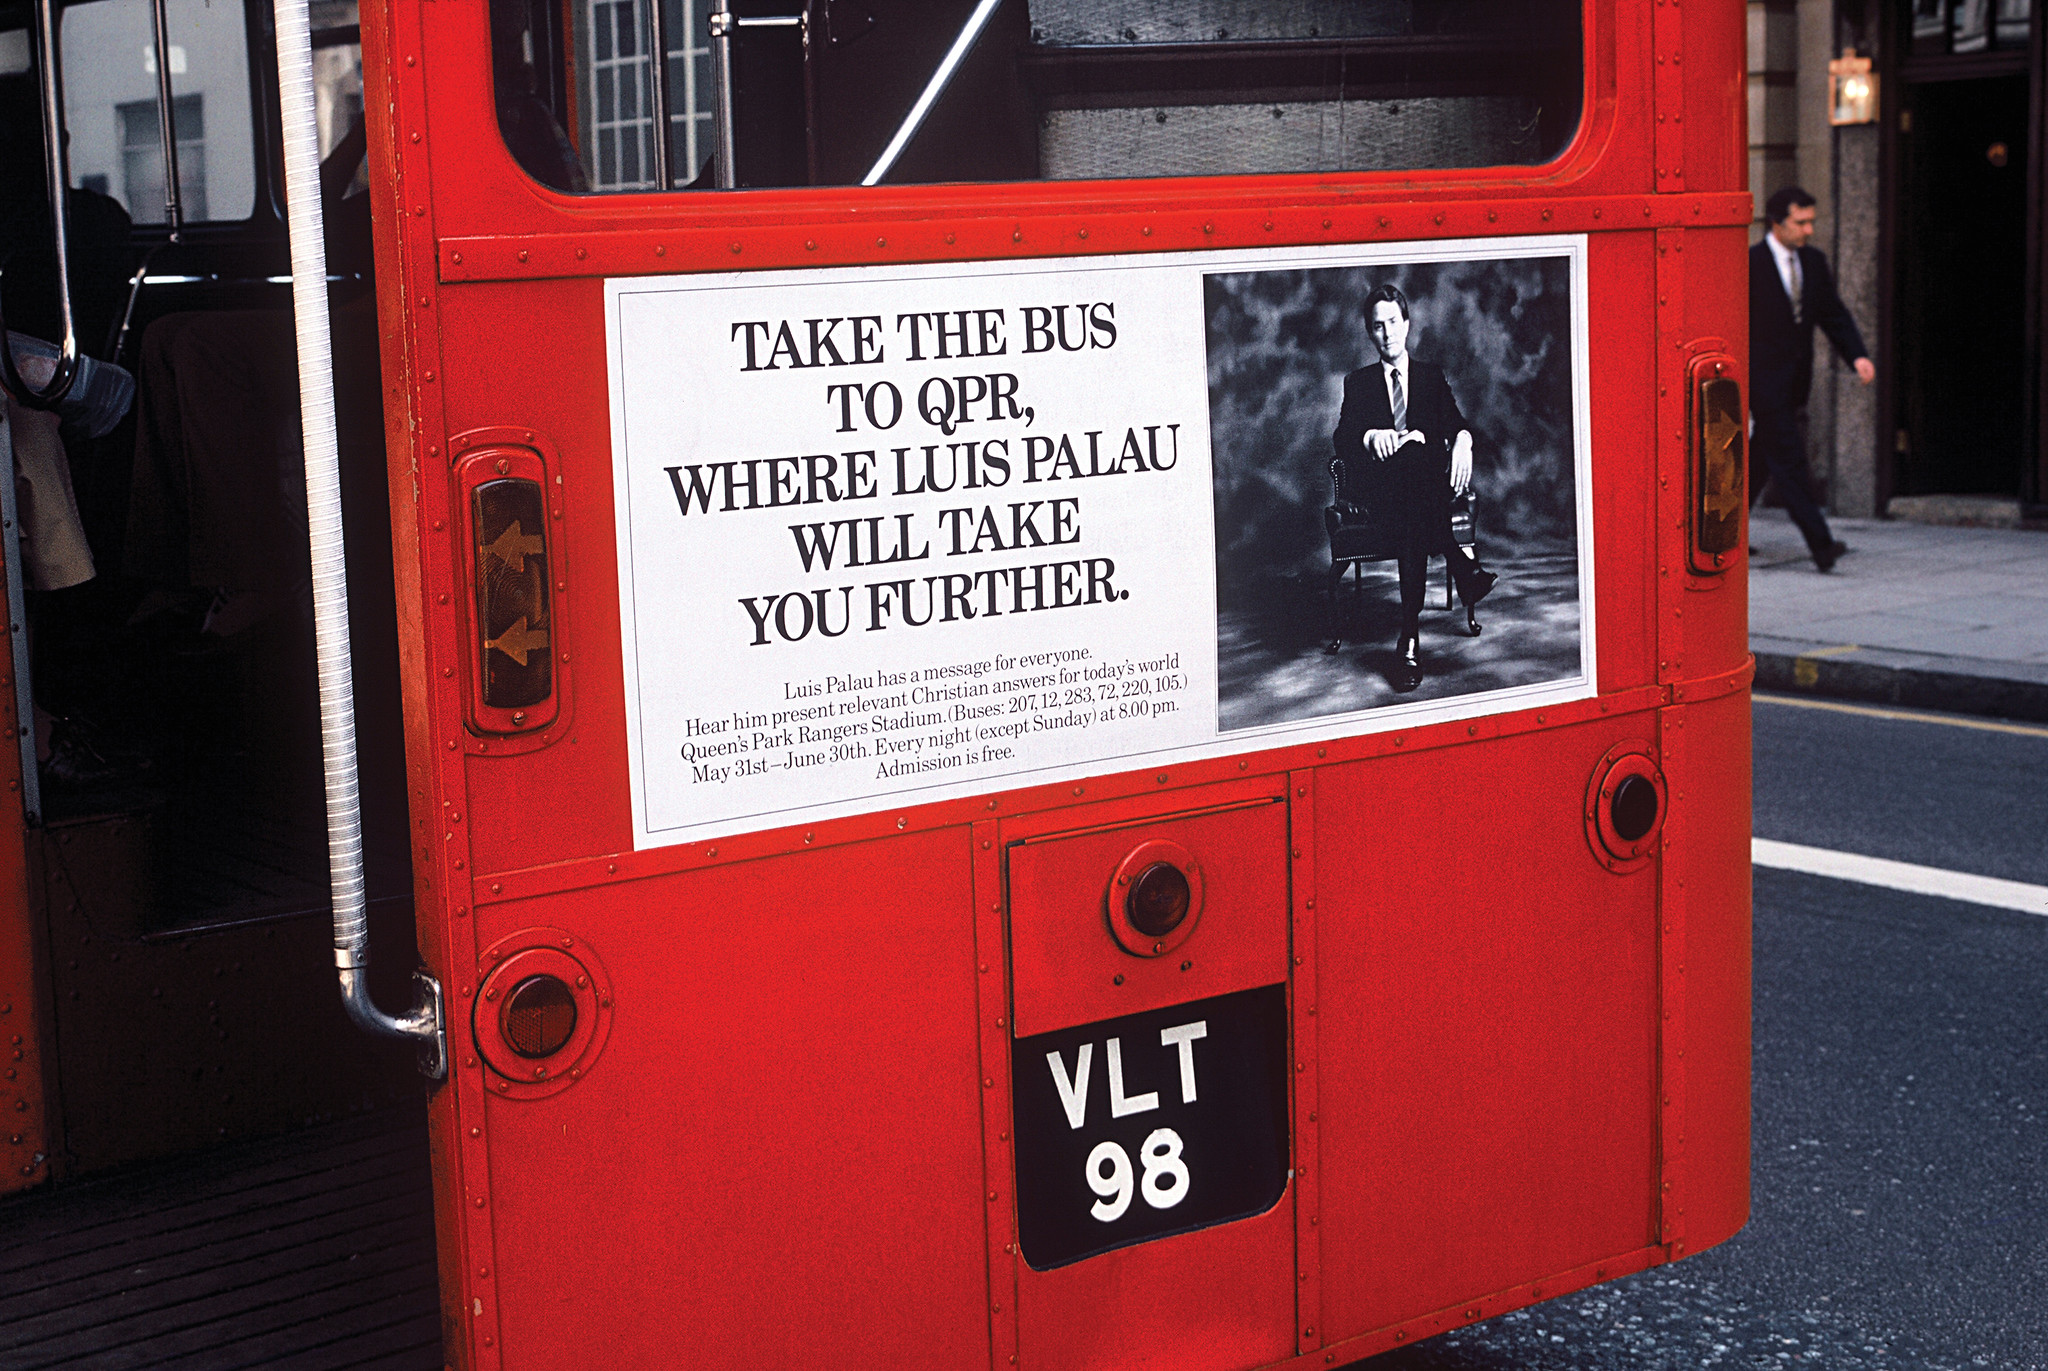 """As part of a massive, award-winning publicity campaign for Luis' Mission to London in 1984, posters were plastered across the city of London with slogans like """"Bring Your Doubts"""" or """"Take this Bus to QPR where Luis Palau will take you further."""""""